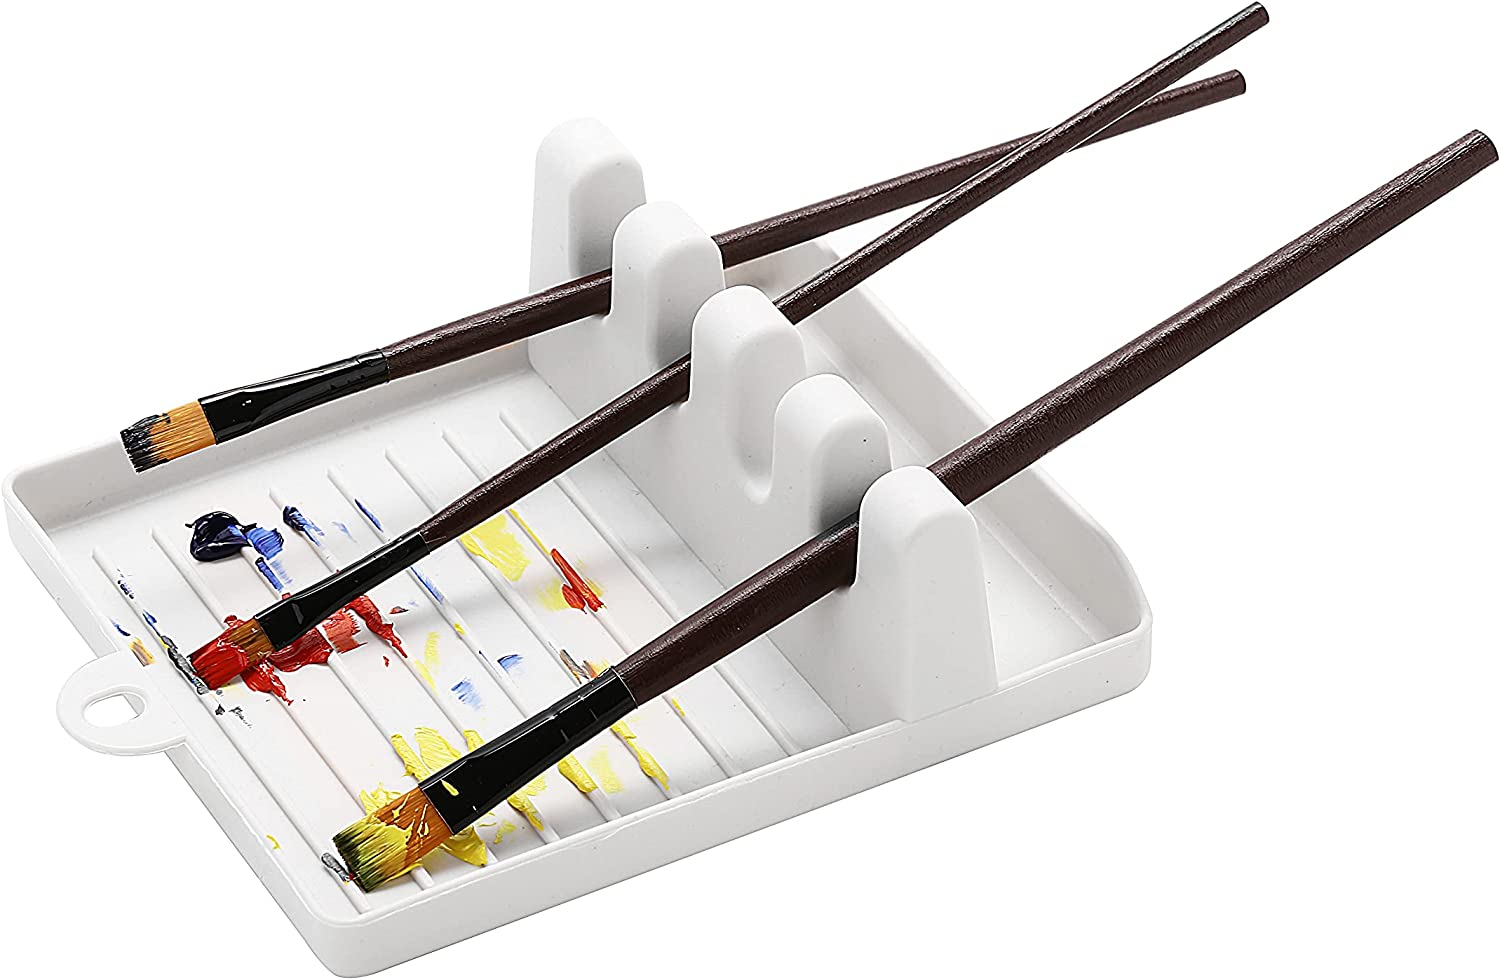 Paint brush holder for large paint brush rest with 5 slots suitable for watercolor,oil,acrylic painting party